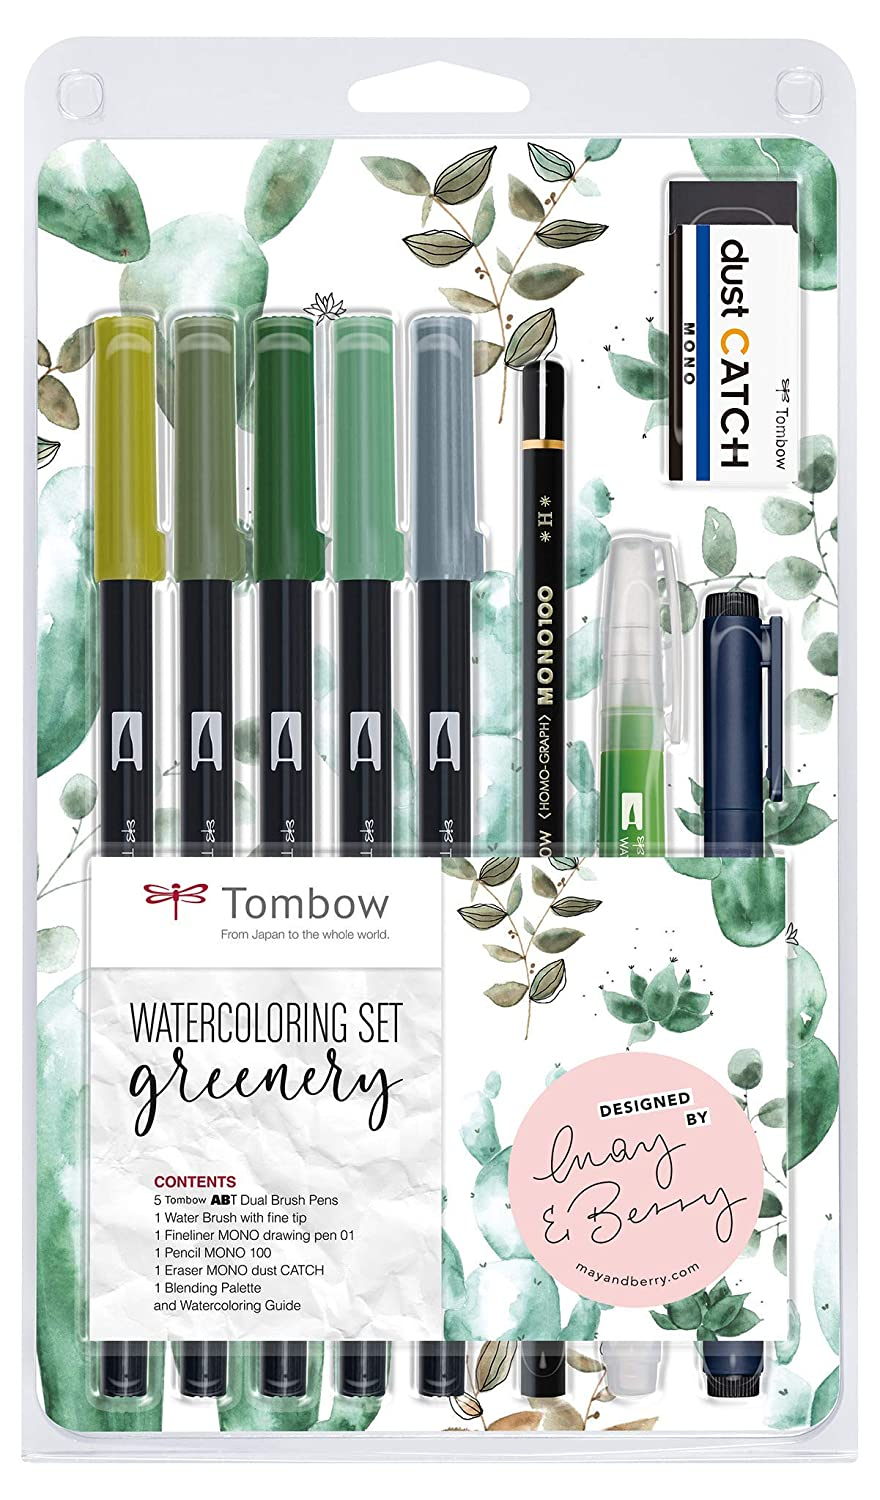 Tombow greenery